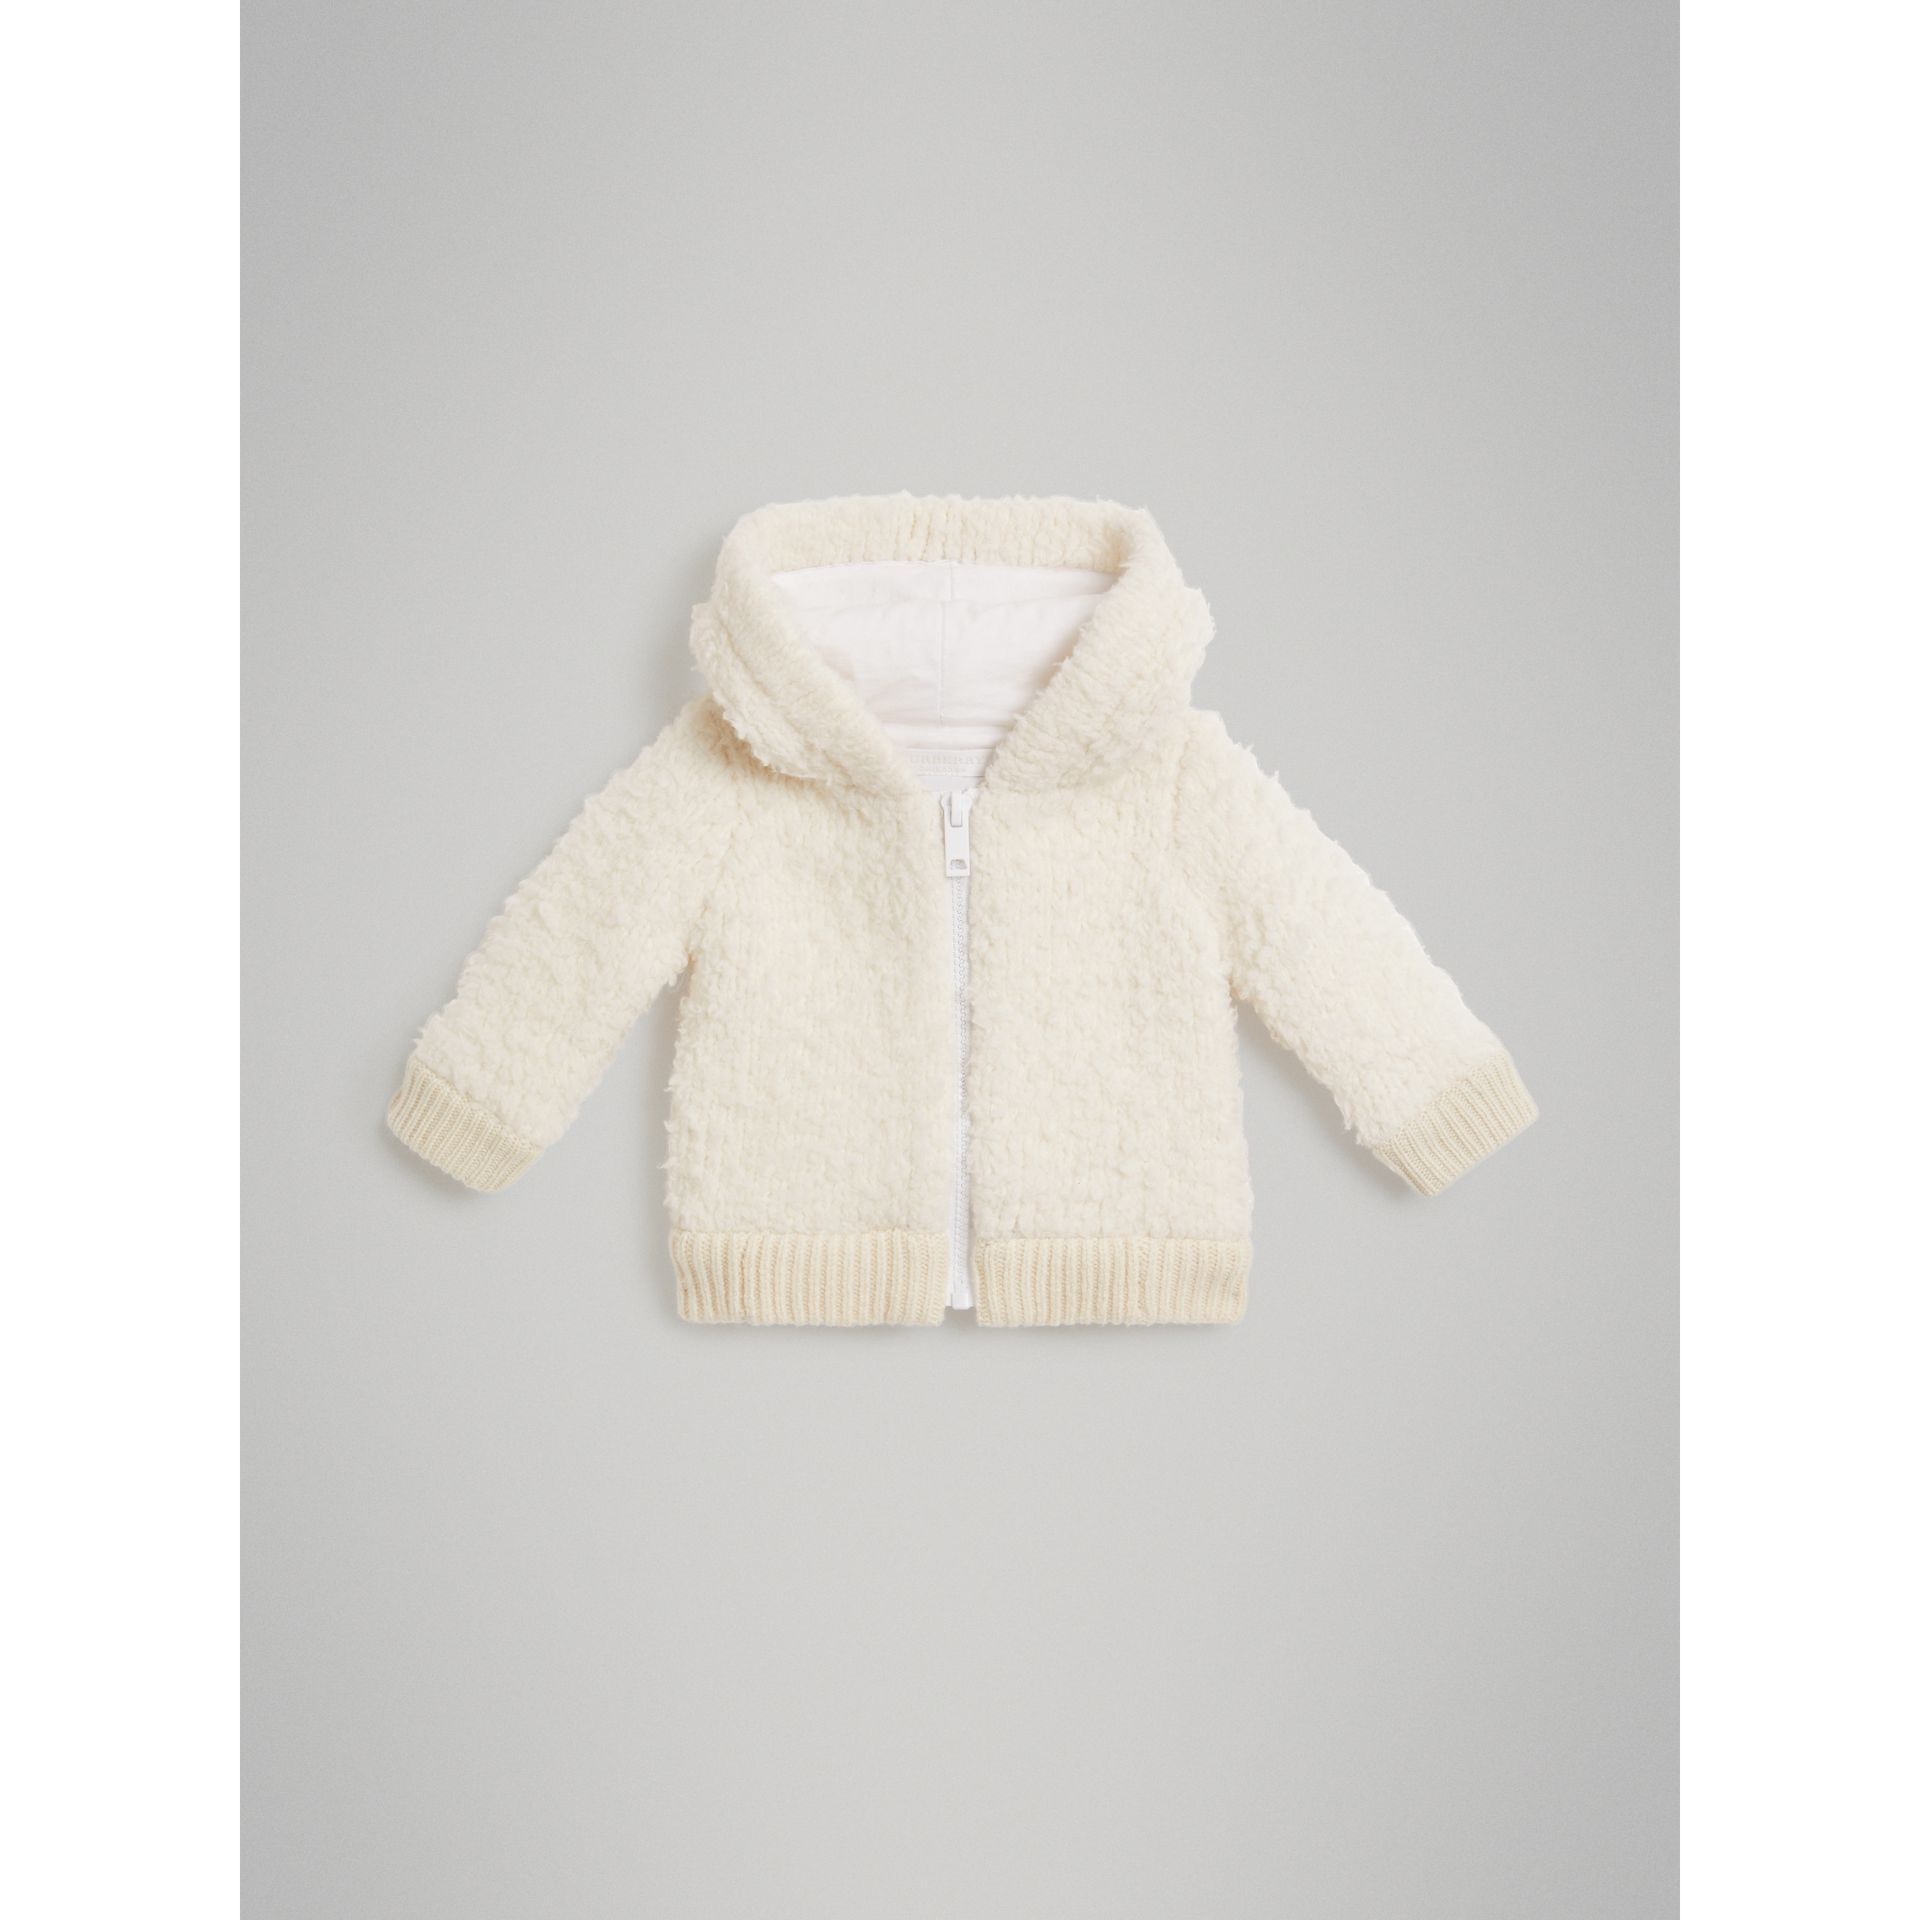 Wool Blend Hooded Top in Ivory - Children | Burberry - gallery image 0